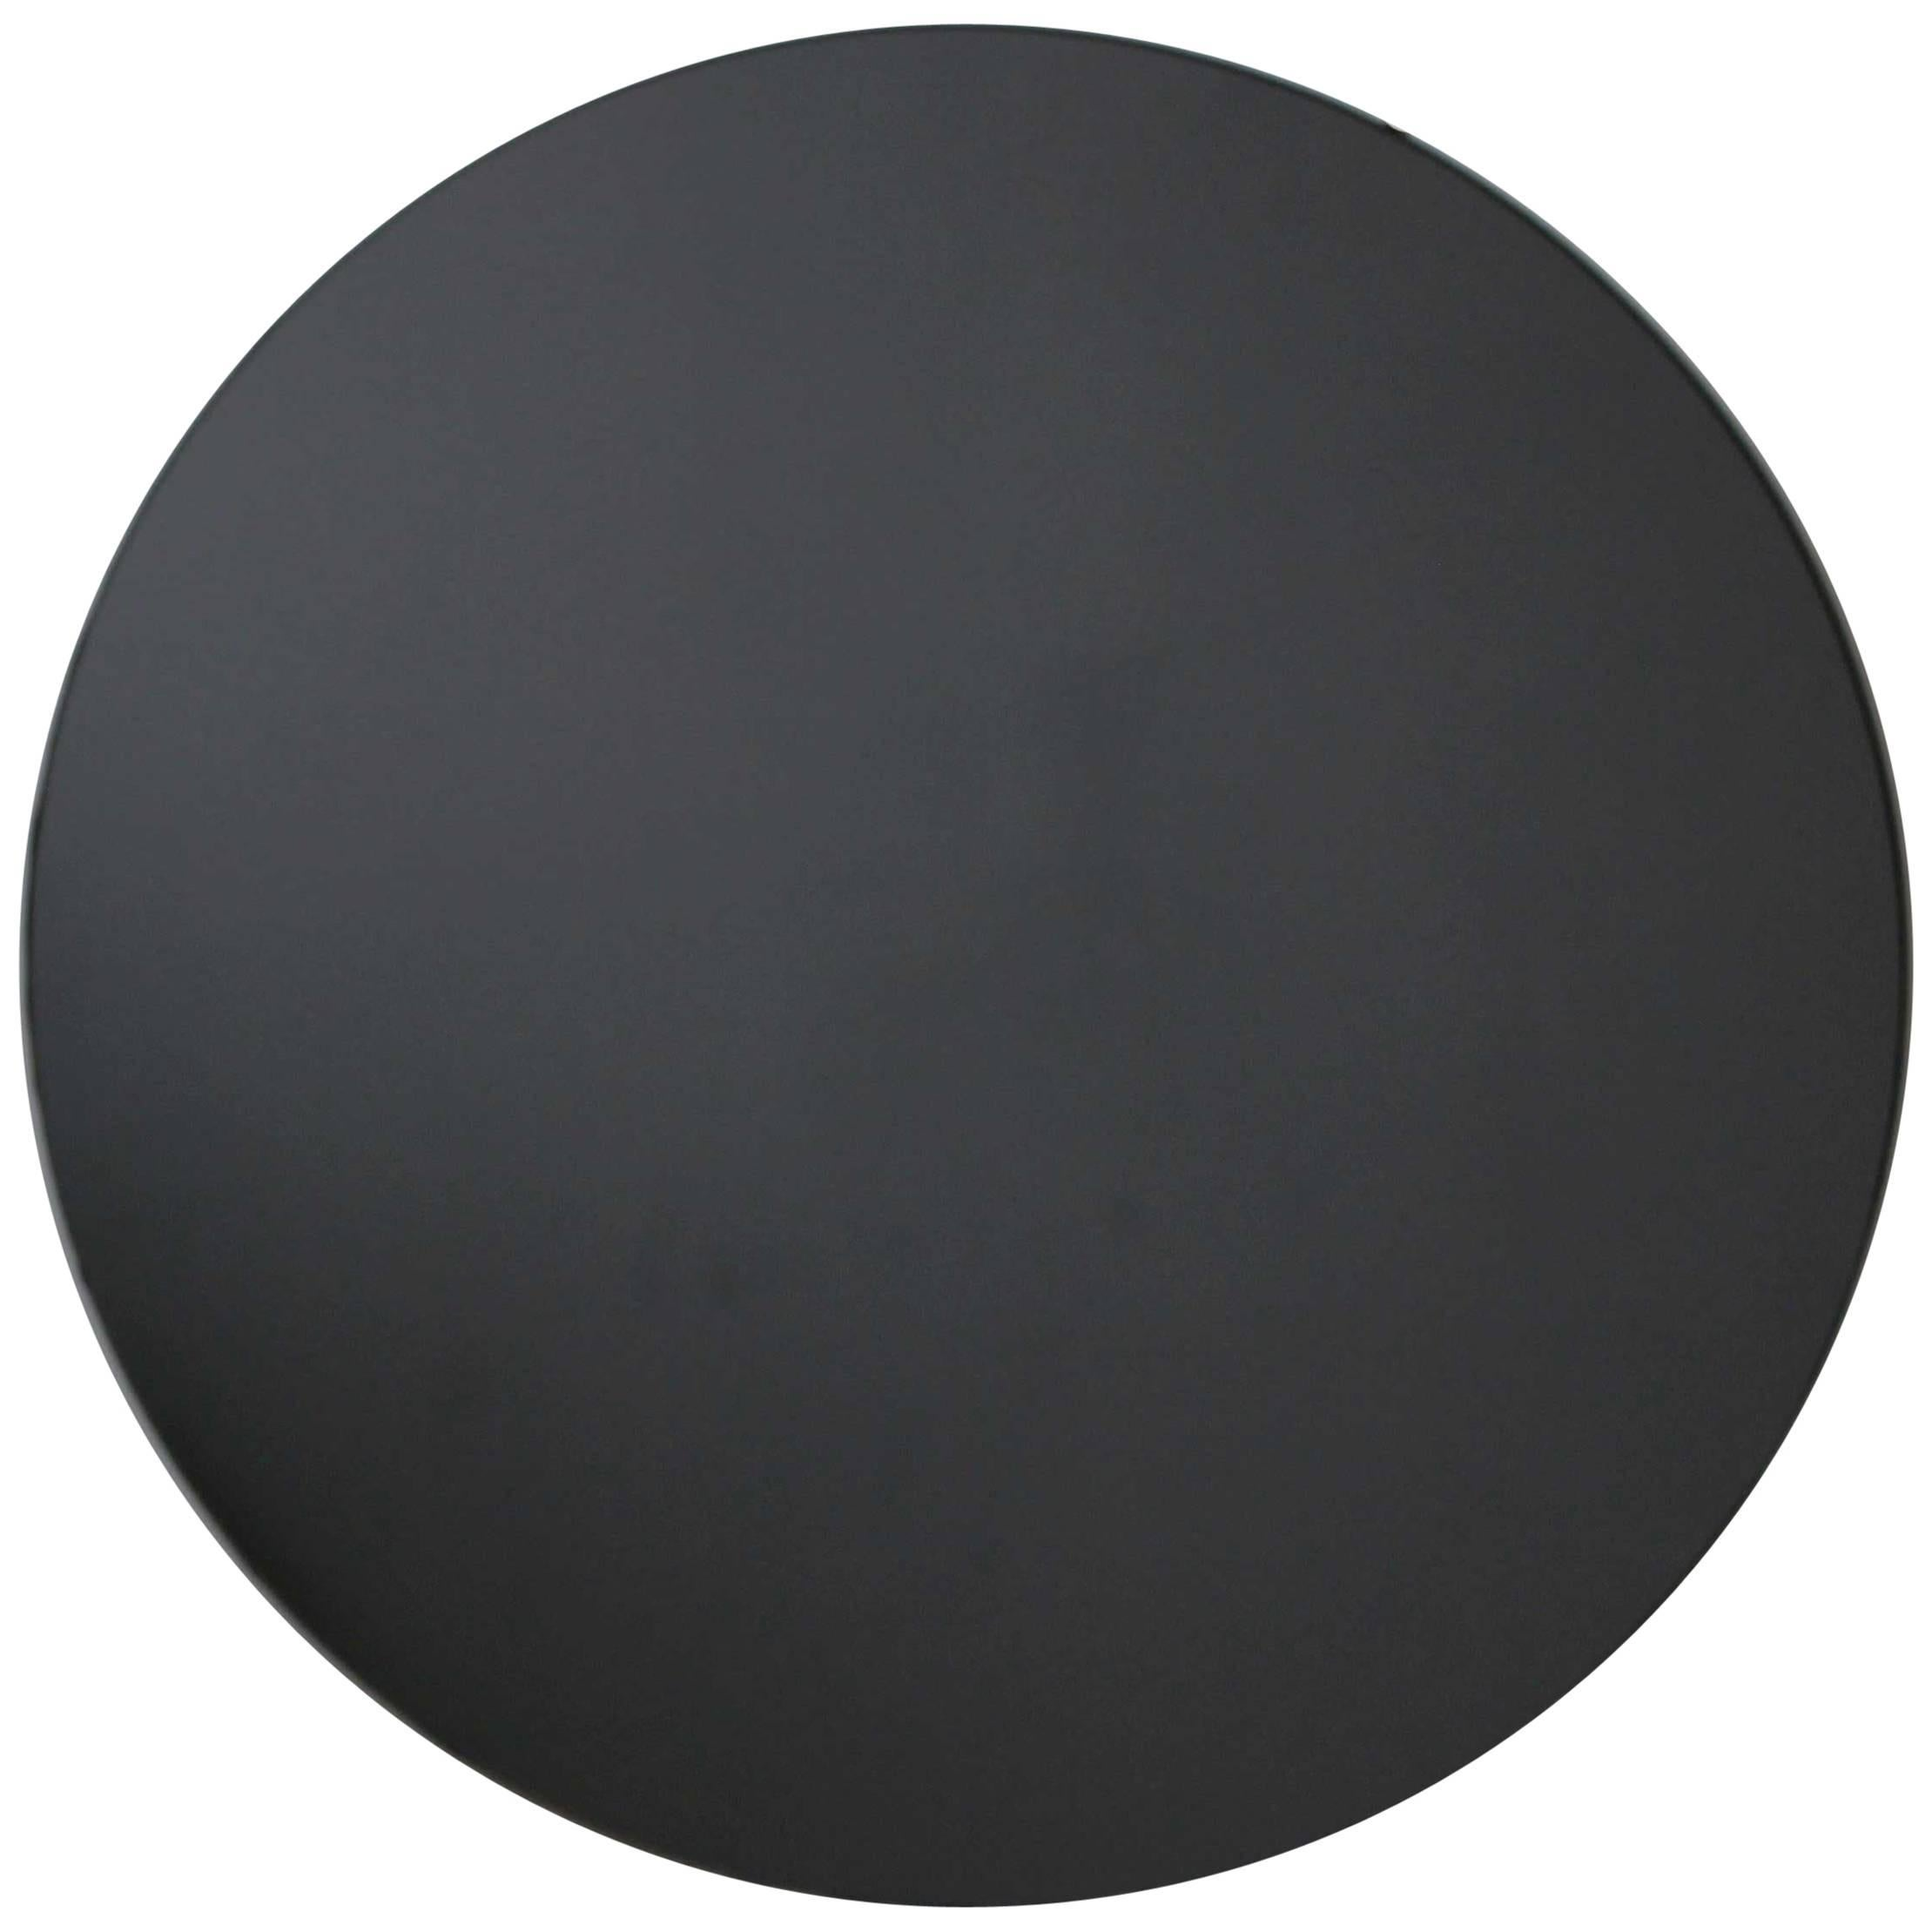 Orbis™ Black Tinted Round Frameless Contemporary Mirror - Oversized, Extra Large